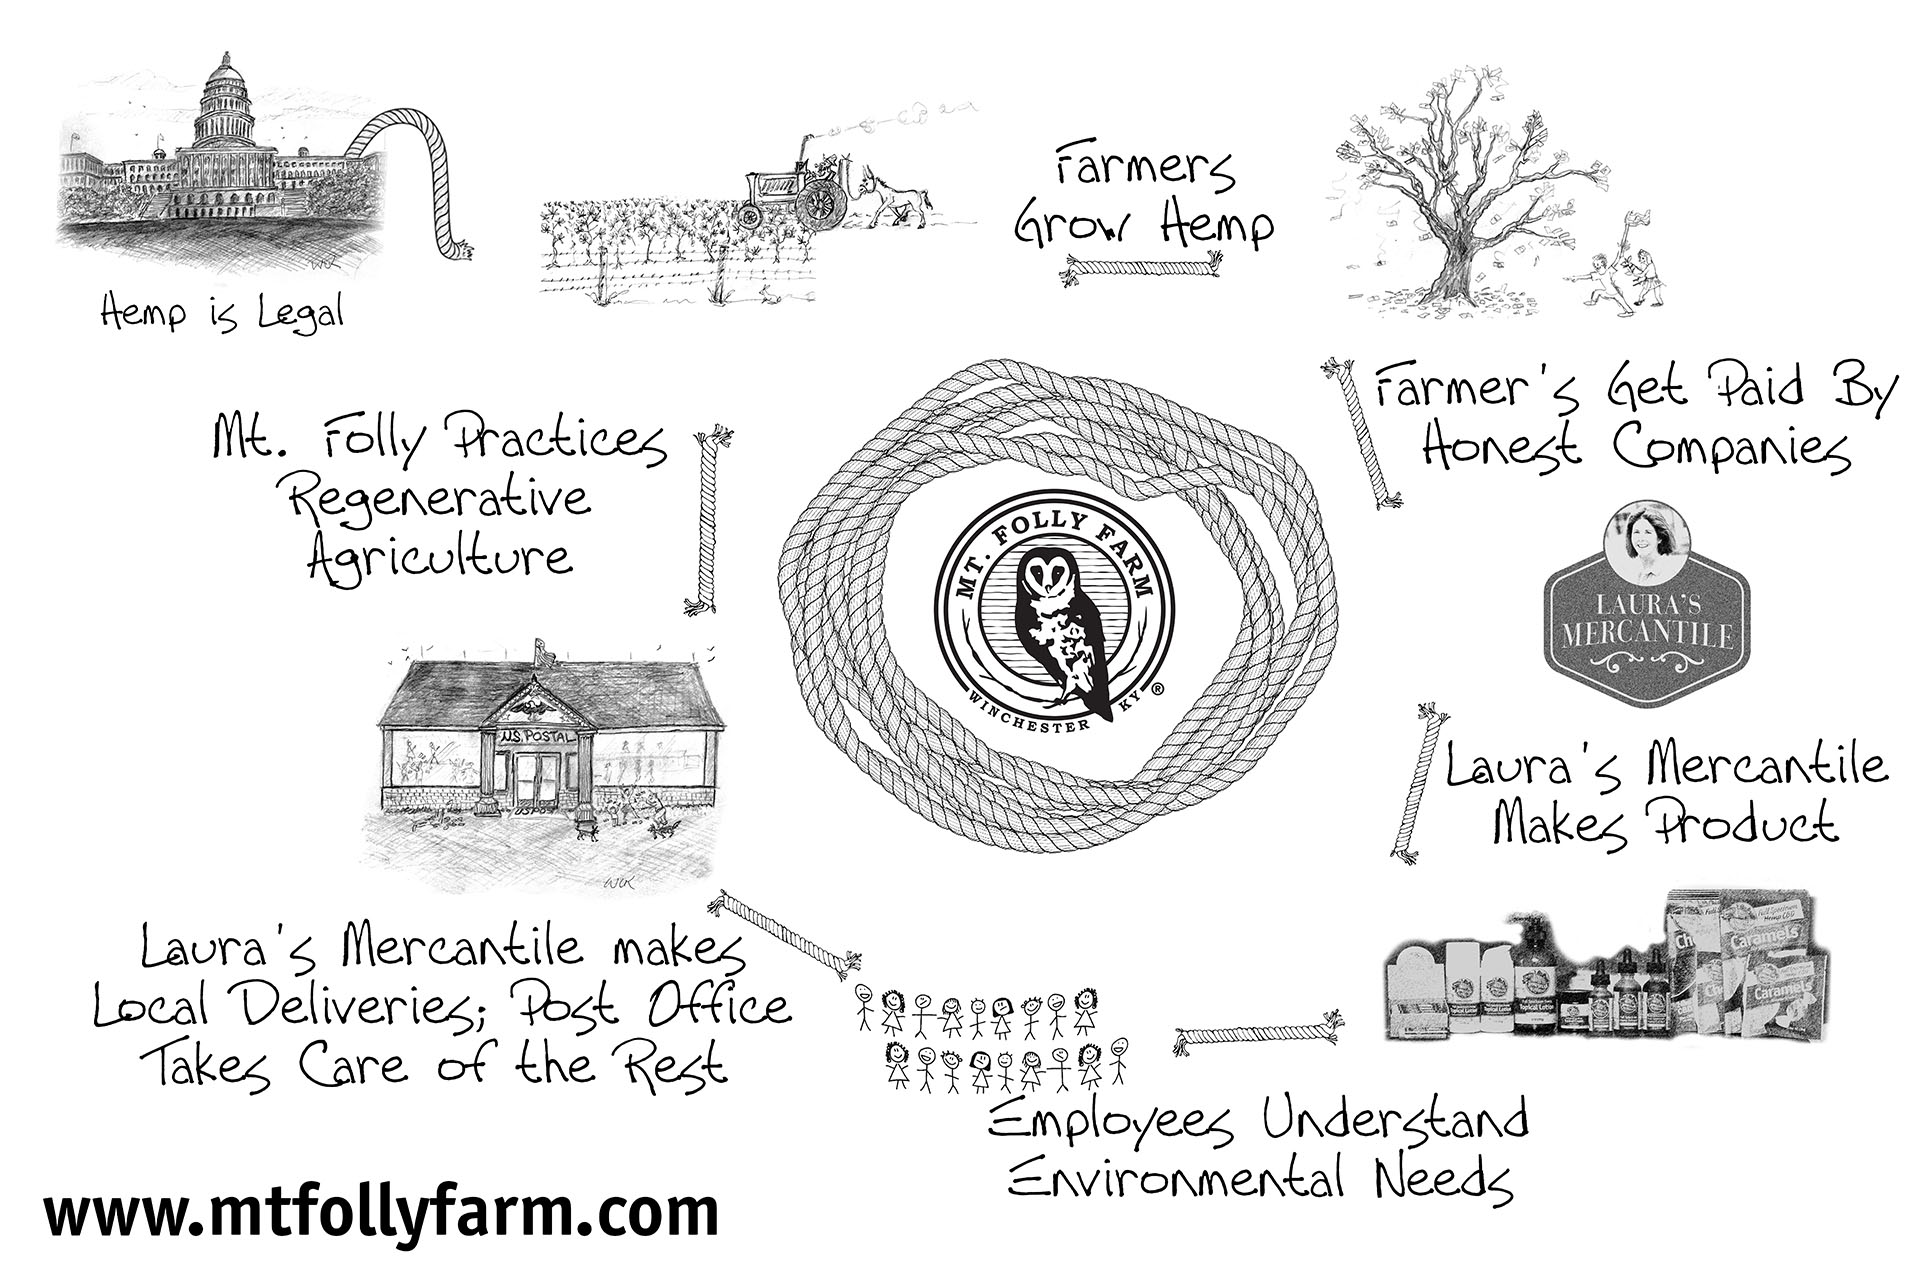 Laura Freeman's regenerative agriculture system at Mt. Folly Farm.